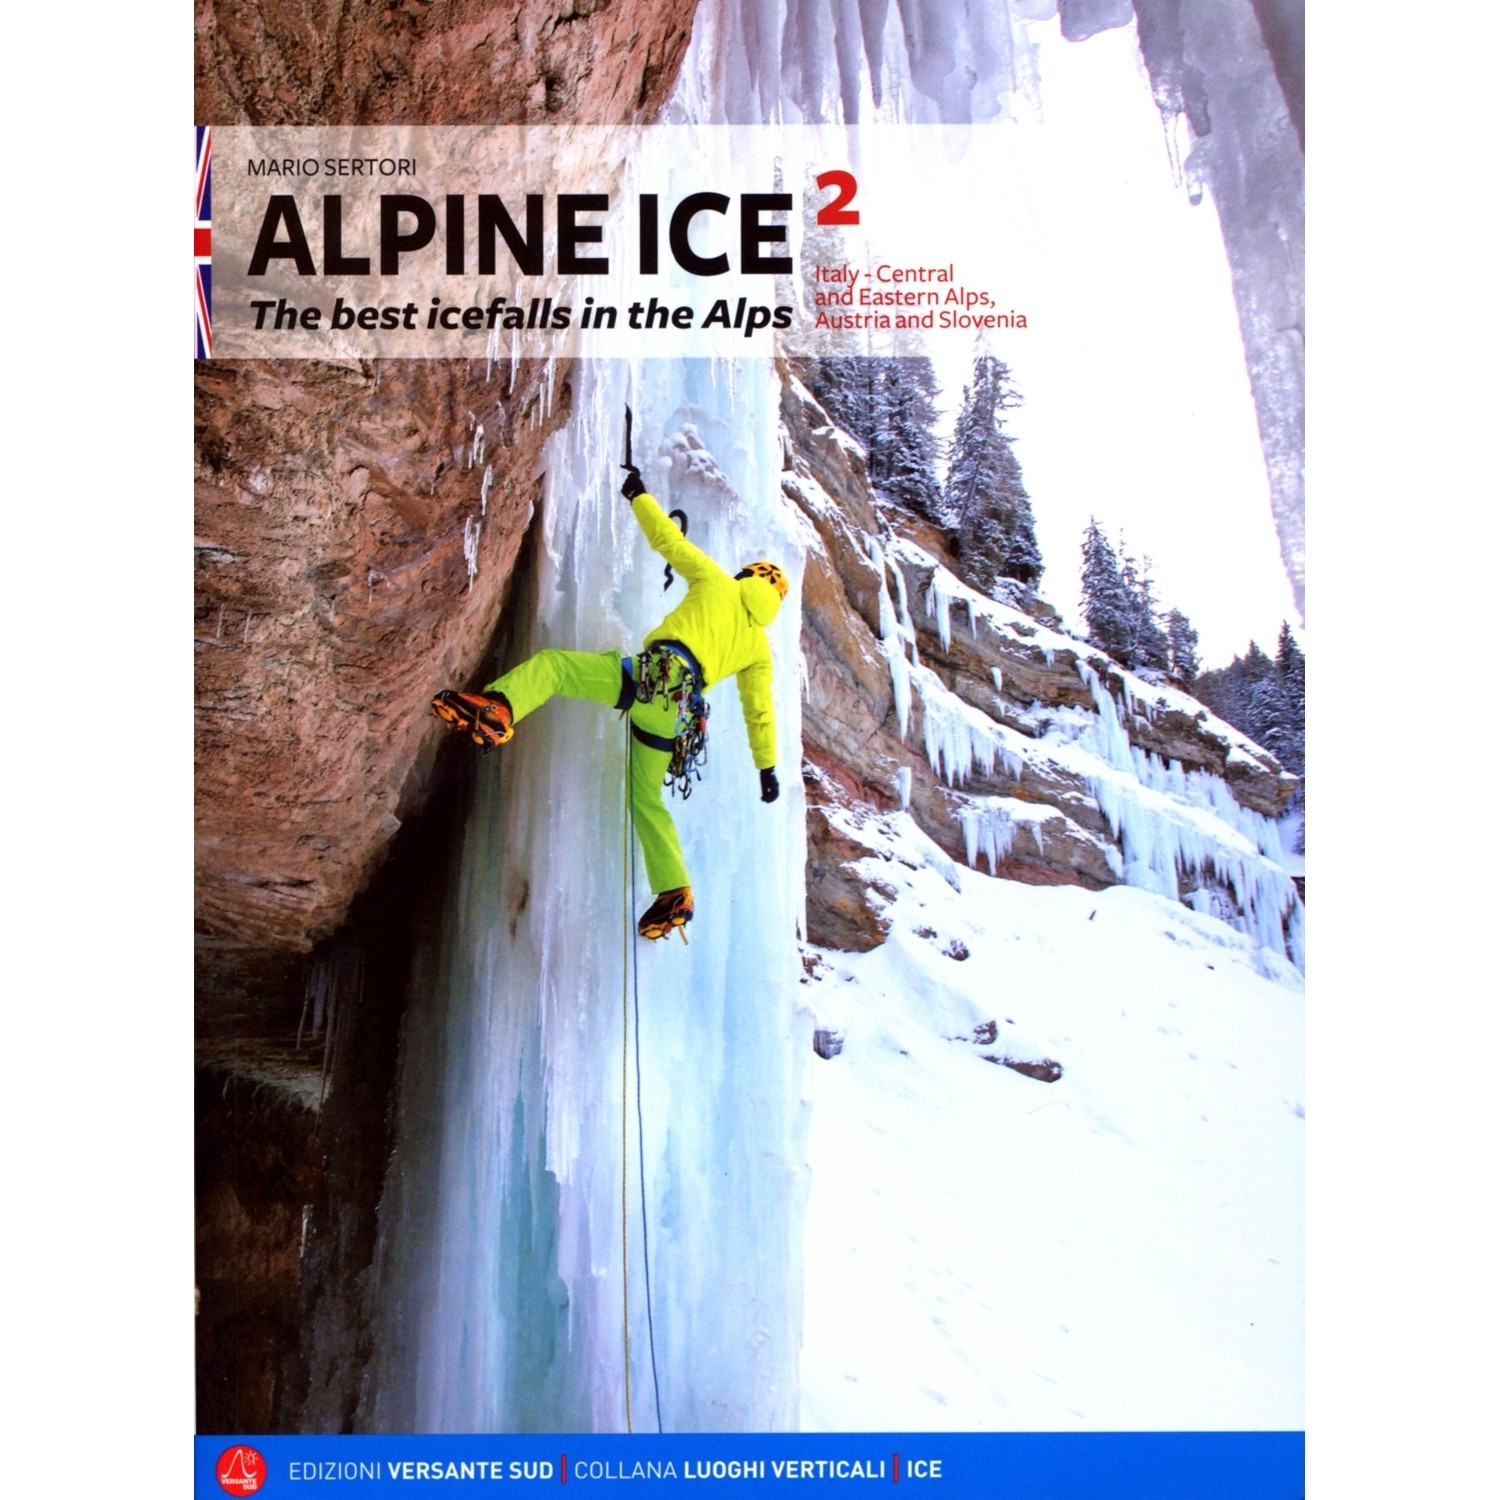 Alpine Ice 2: The best icefalls in the Alps